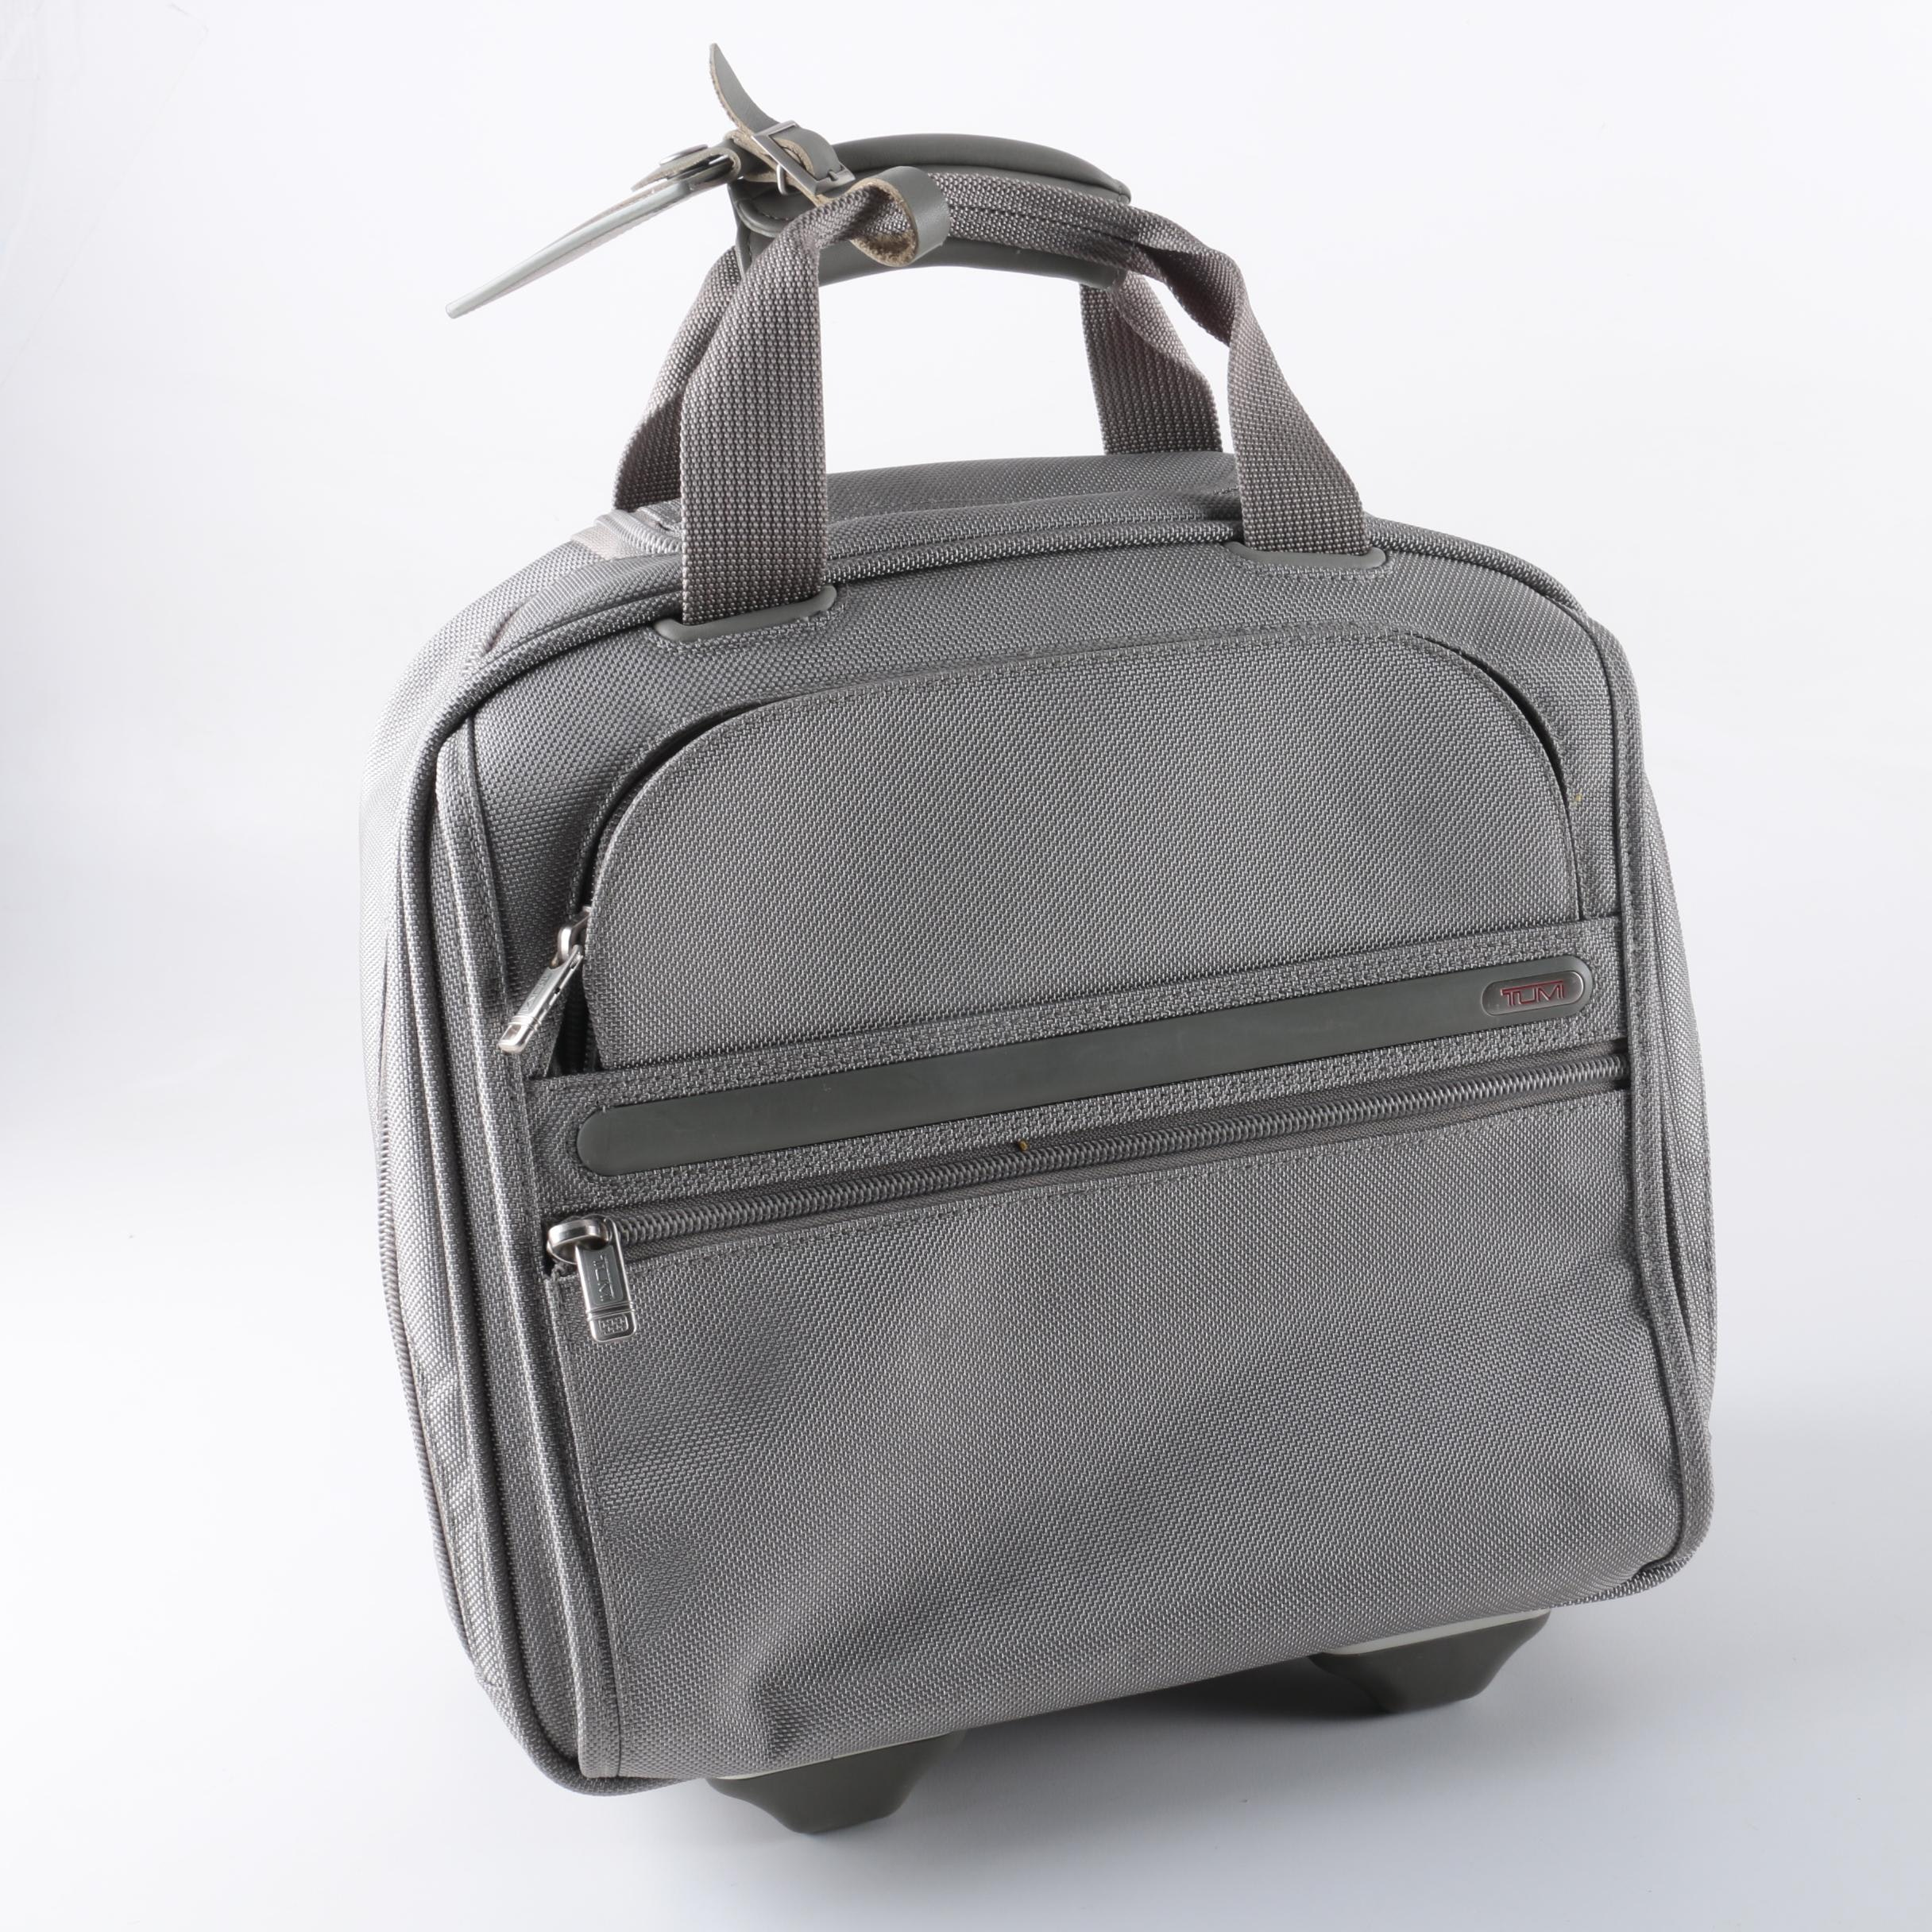 Tumi Grey Woven Nylon Rolling Carry-On Luggage Bag